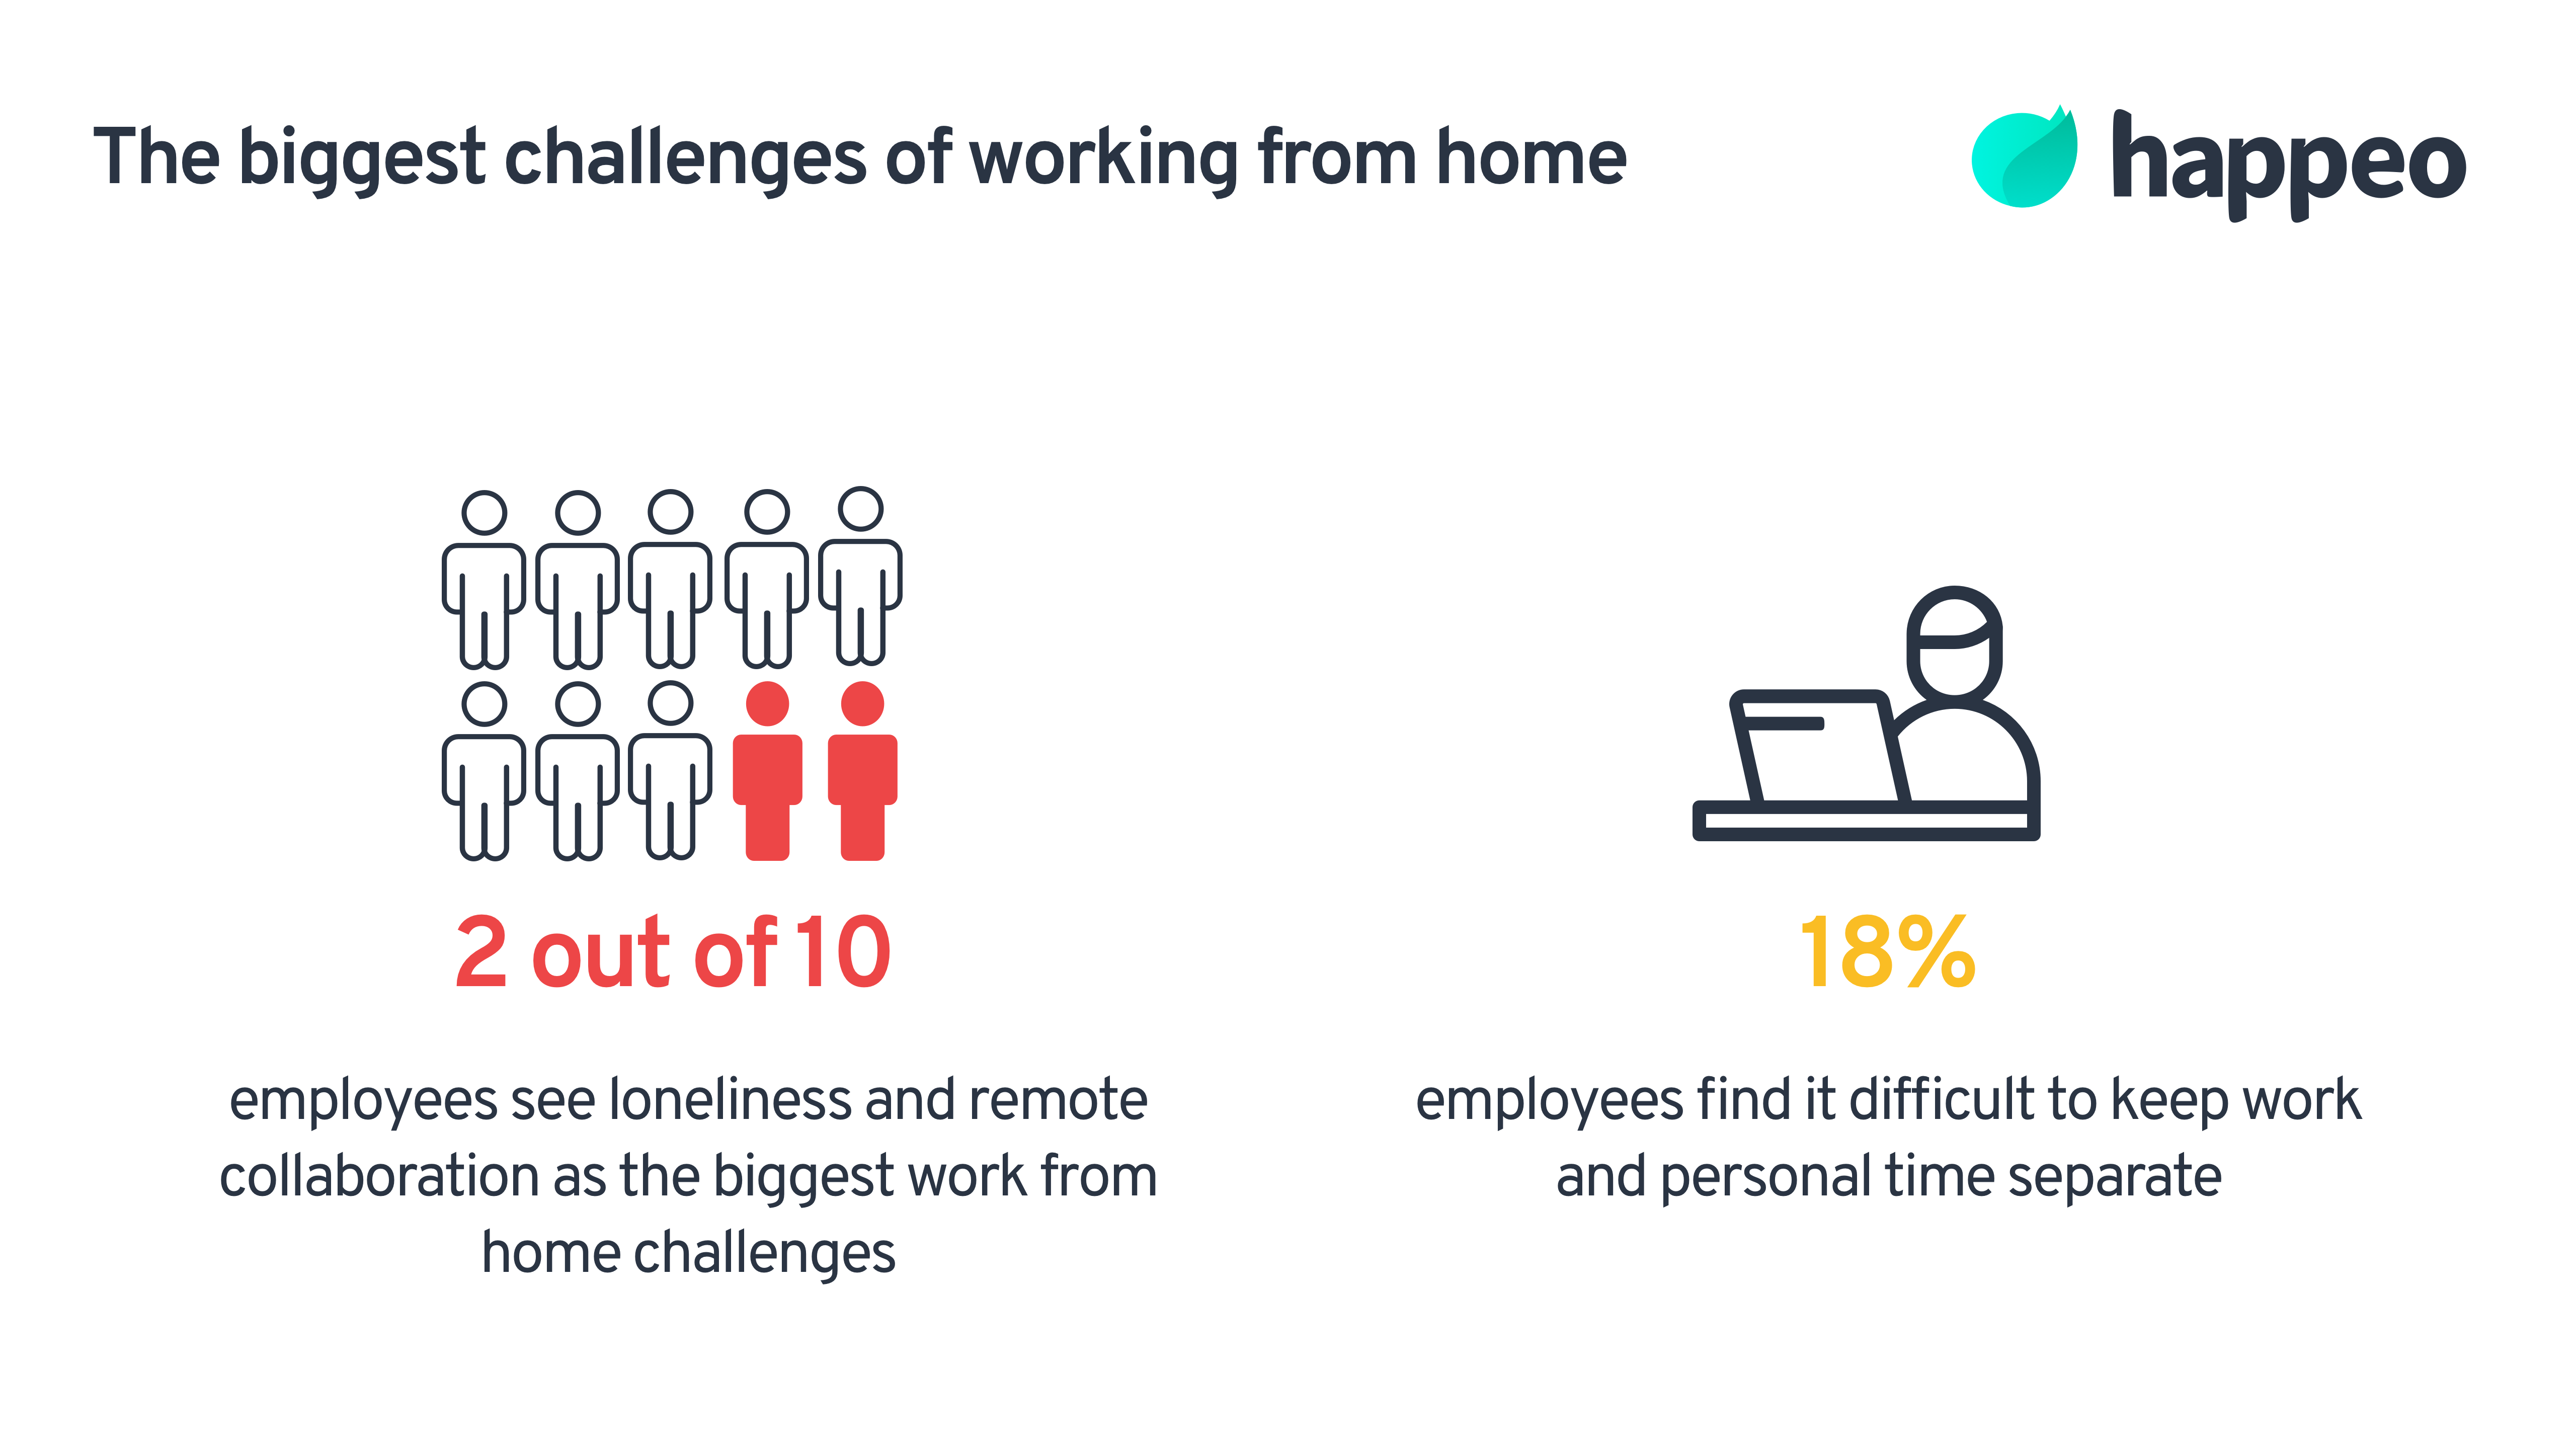 Work from home challenges